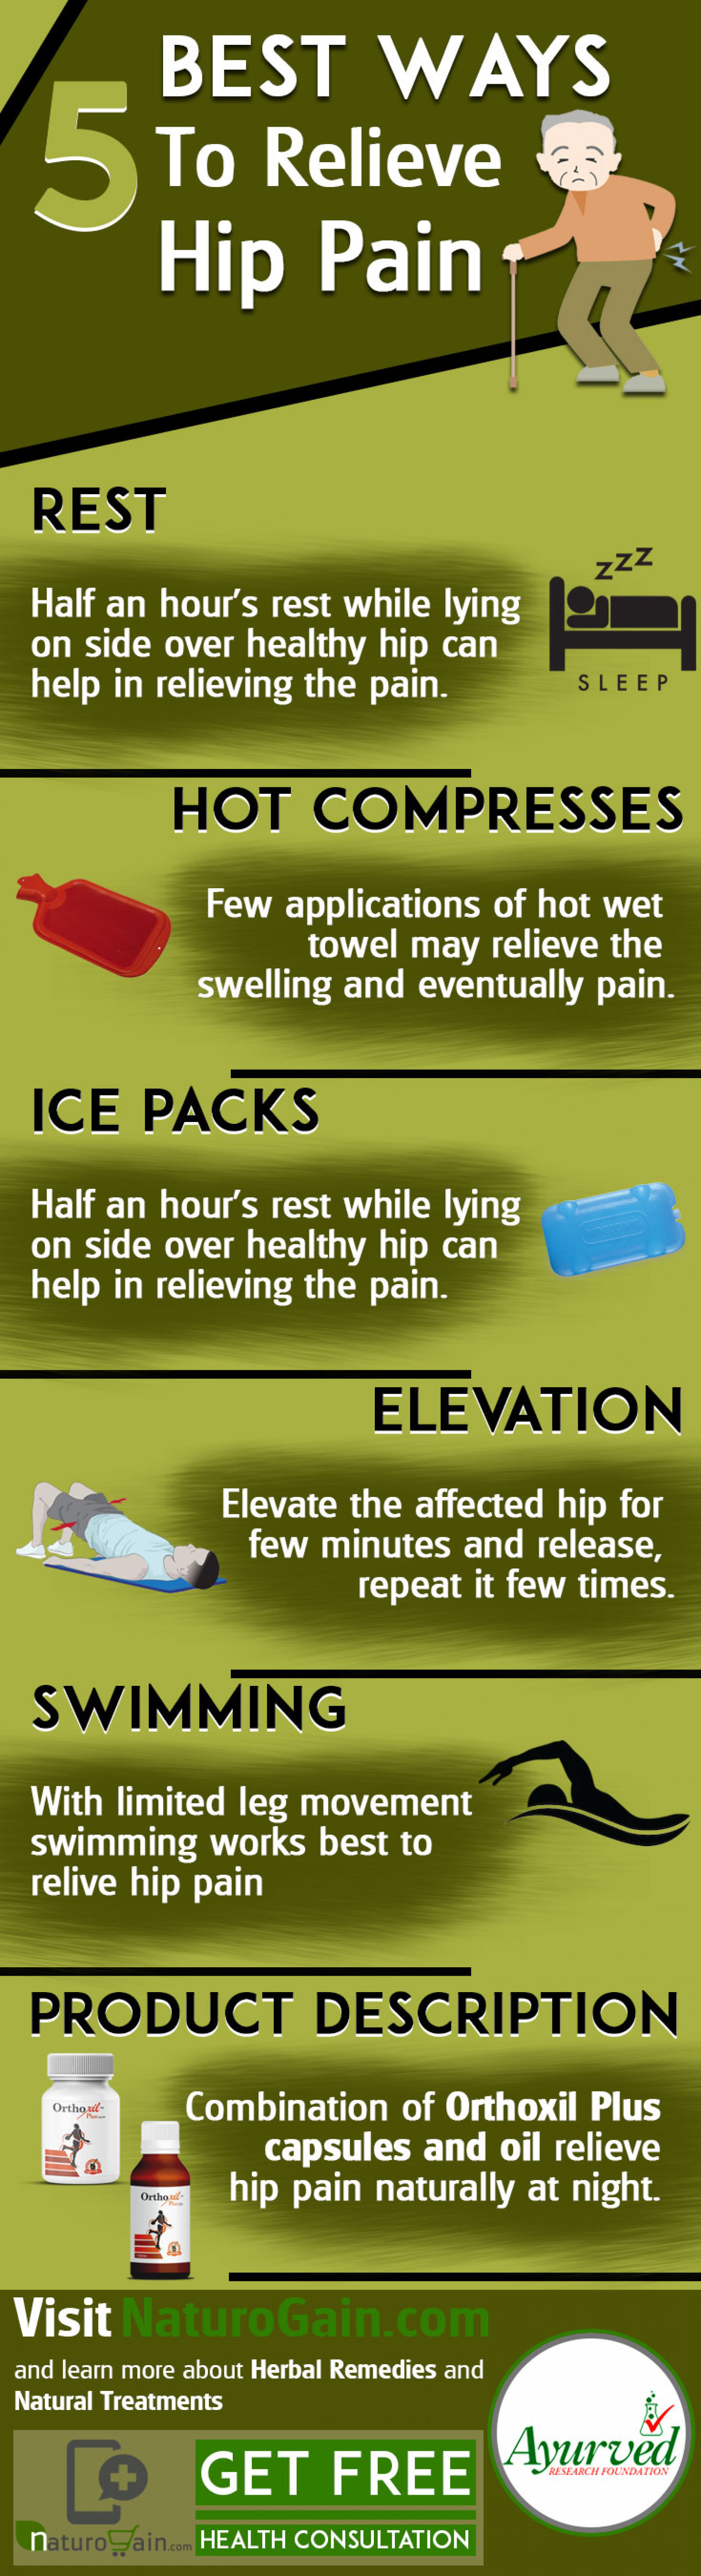 5 Best Ways to Relieve Hip Pain At Night Infographic